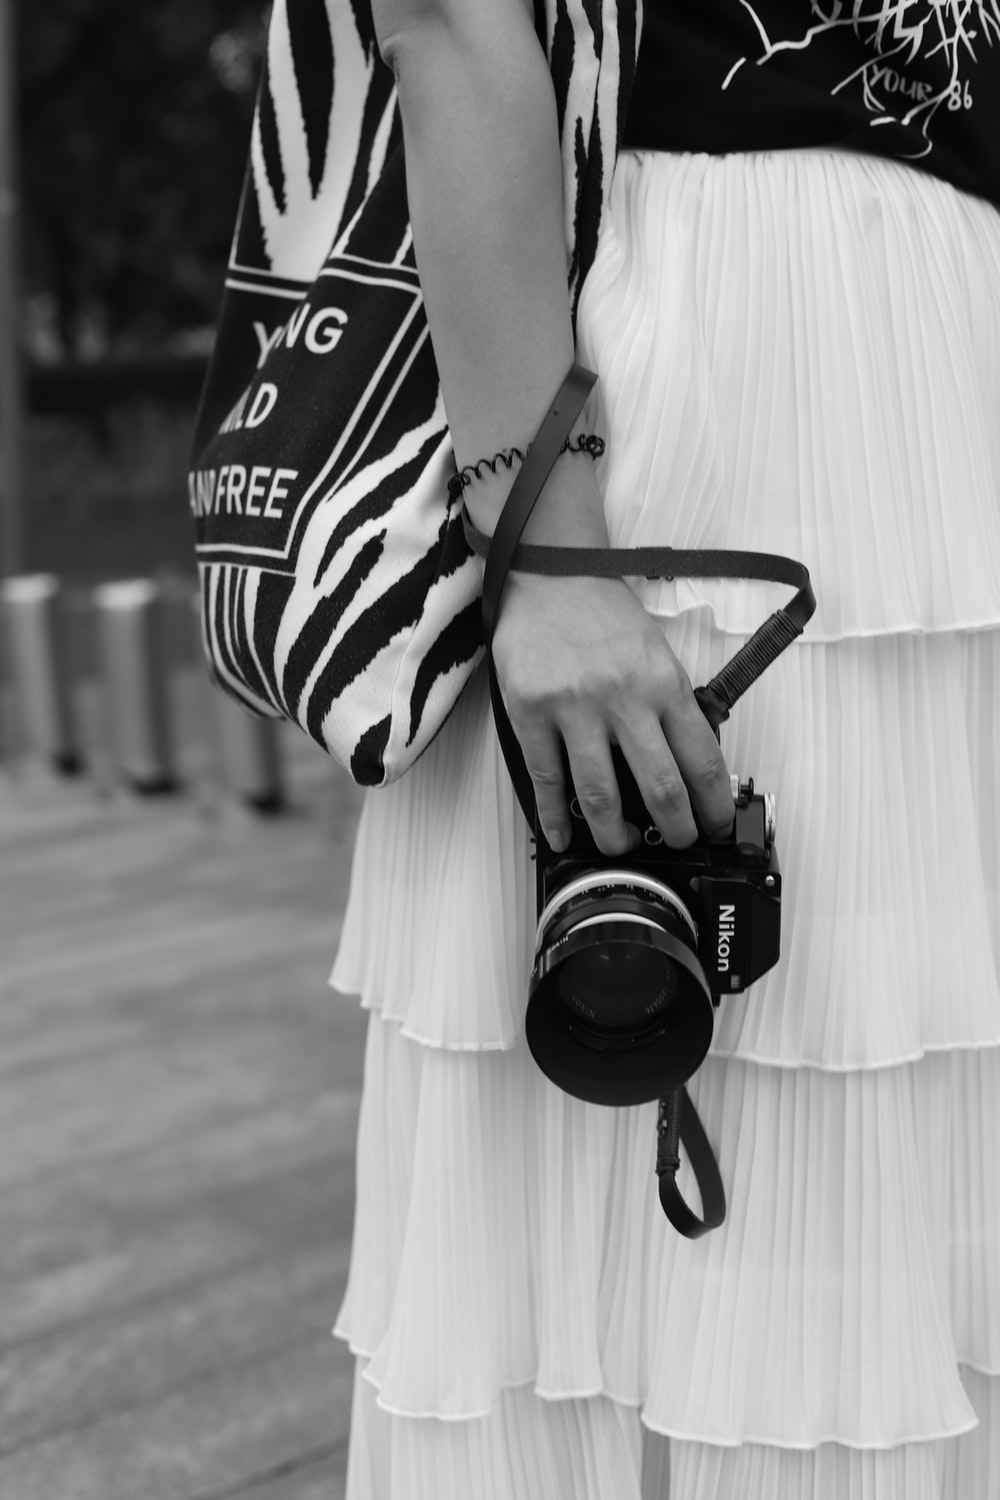 grayscale photo of woman wearing skirt and blouse holding DSLR camera